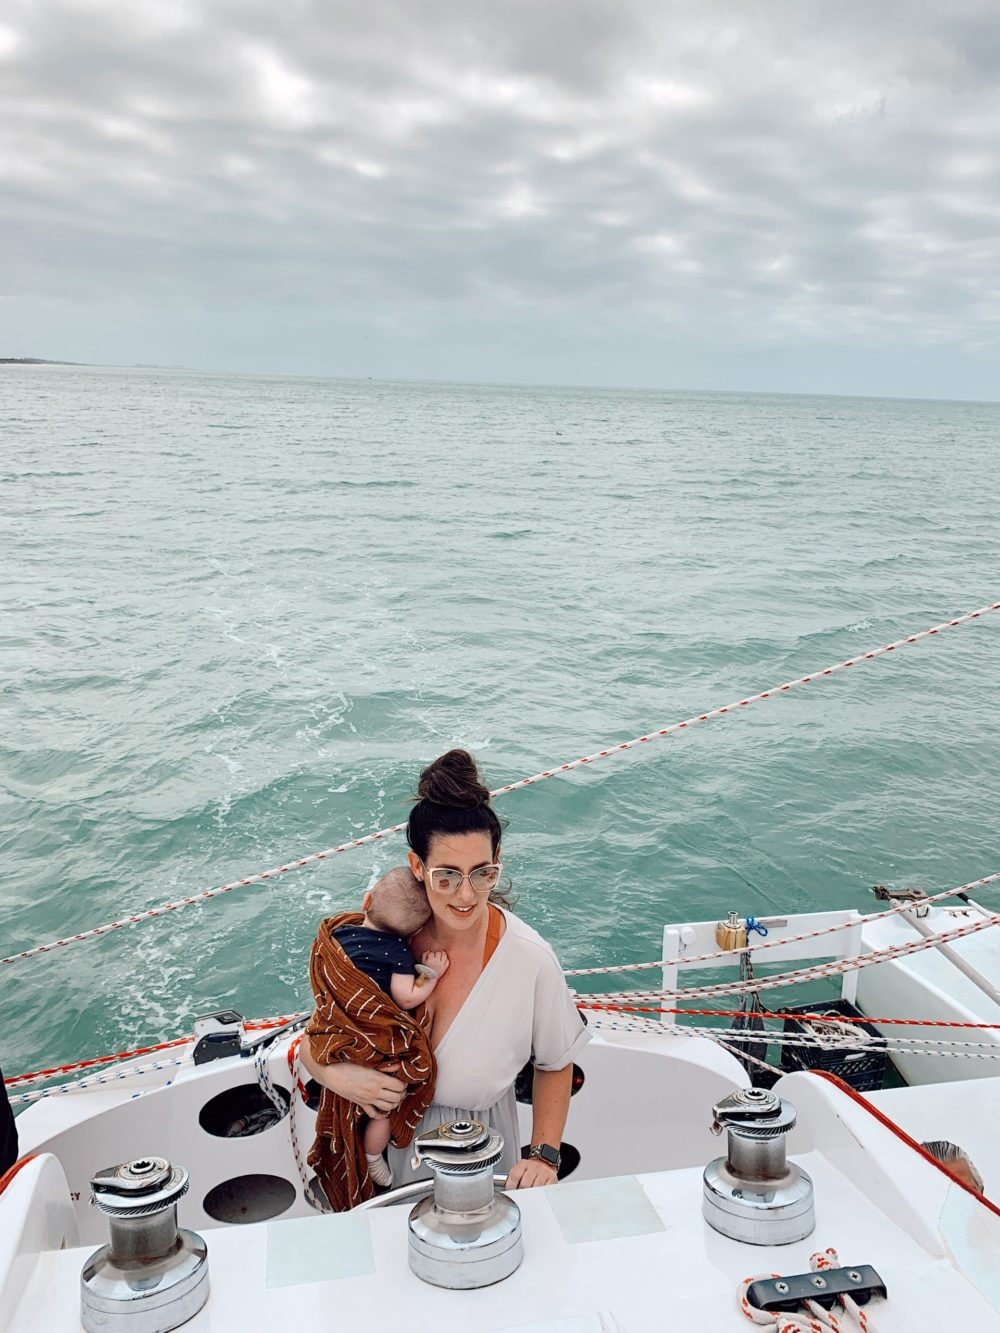 Relaxing catamaran trip with Sweet Liberty, the largest Sailing Catamaran in Southwest Florida. Baby-friendly and we got to steer the boat! | Spectacular Things to Do in Naples FL This Weekend by popular Florida blog, Fresh Mommy Blog: image of a woman holding a baby on a sailboat.